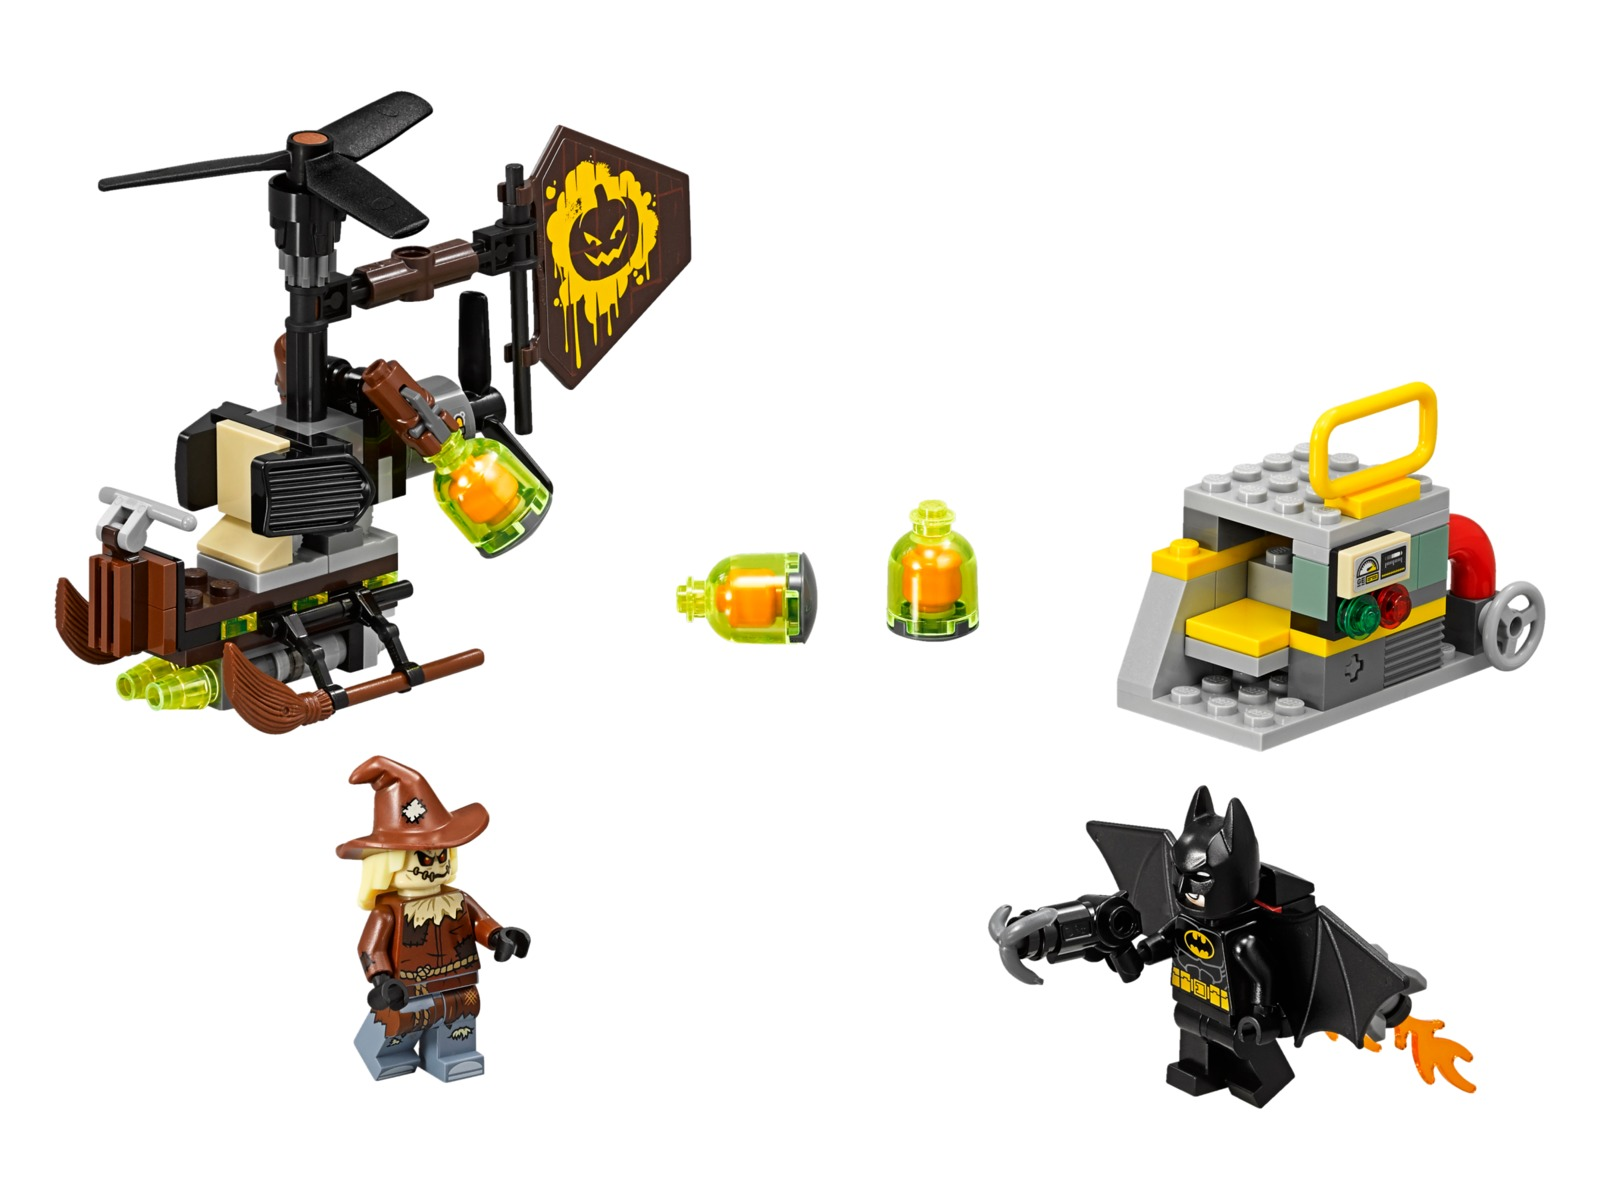 LEGO Batman Movie - Scarecrow Fearful Face-off (70913) image